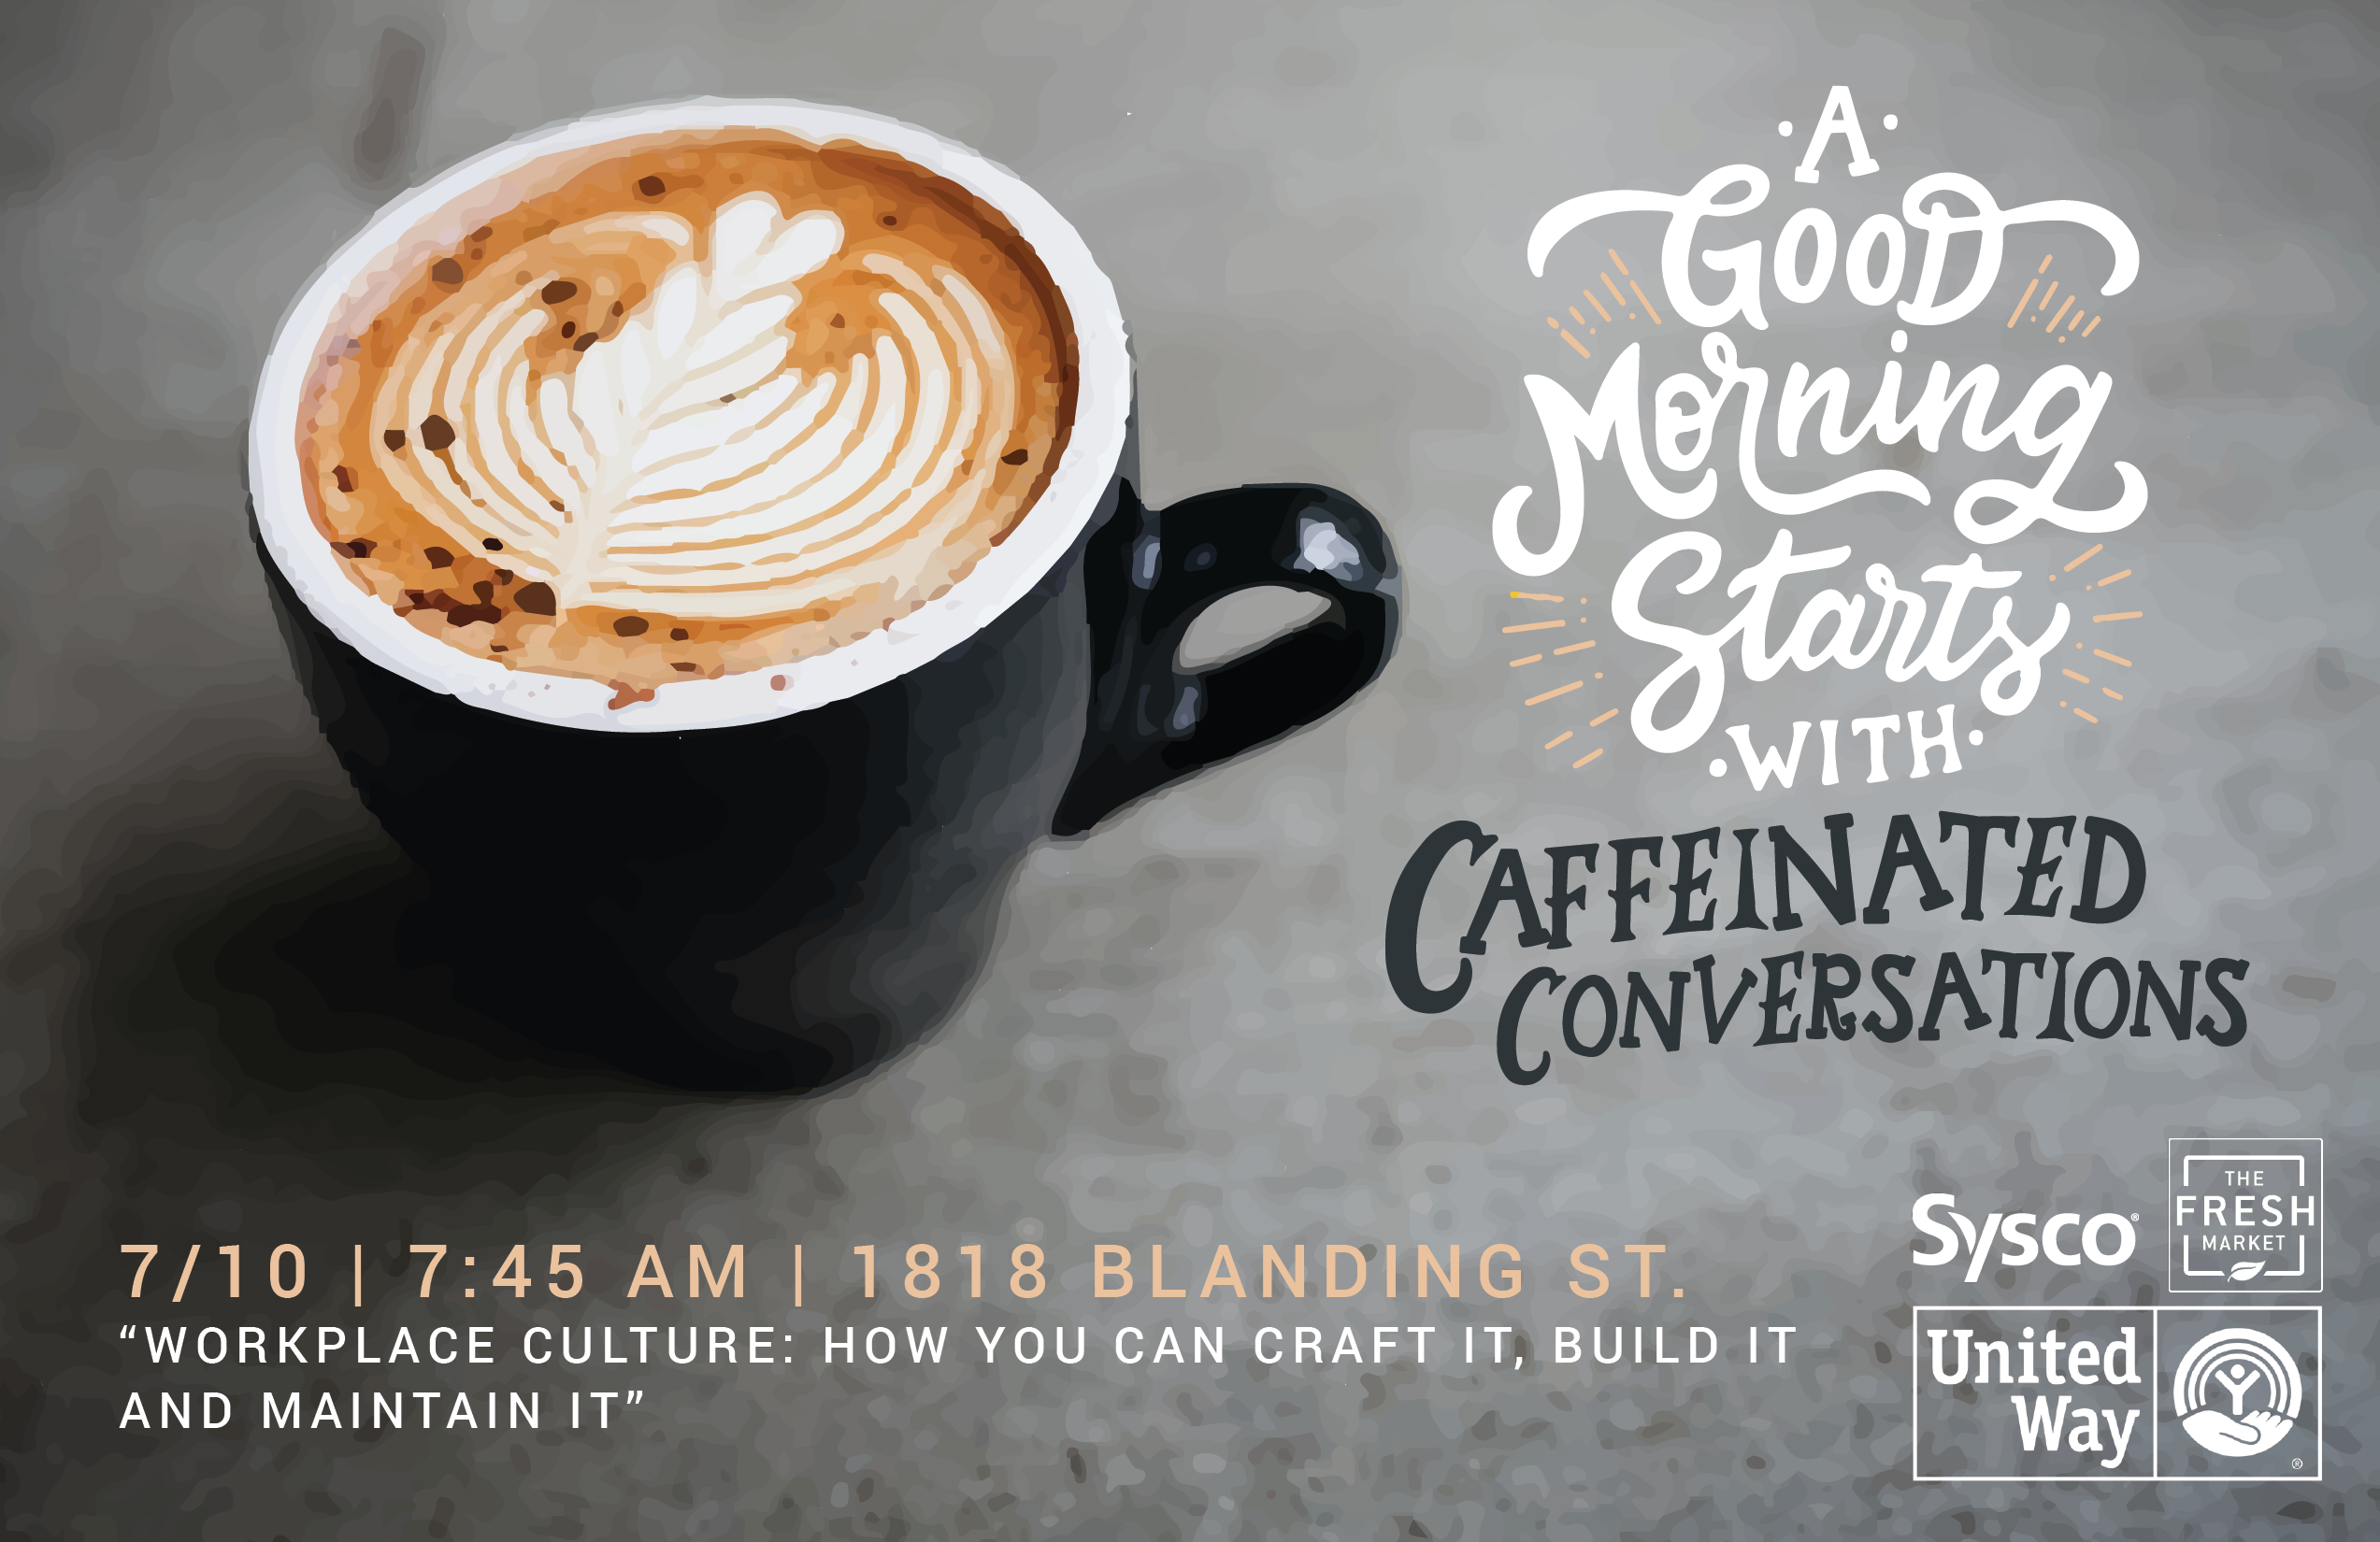 Caffeinated Conversations discusses workplace culture on Wednesday, July 10 at United Way of the Midlands.